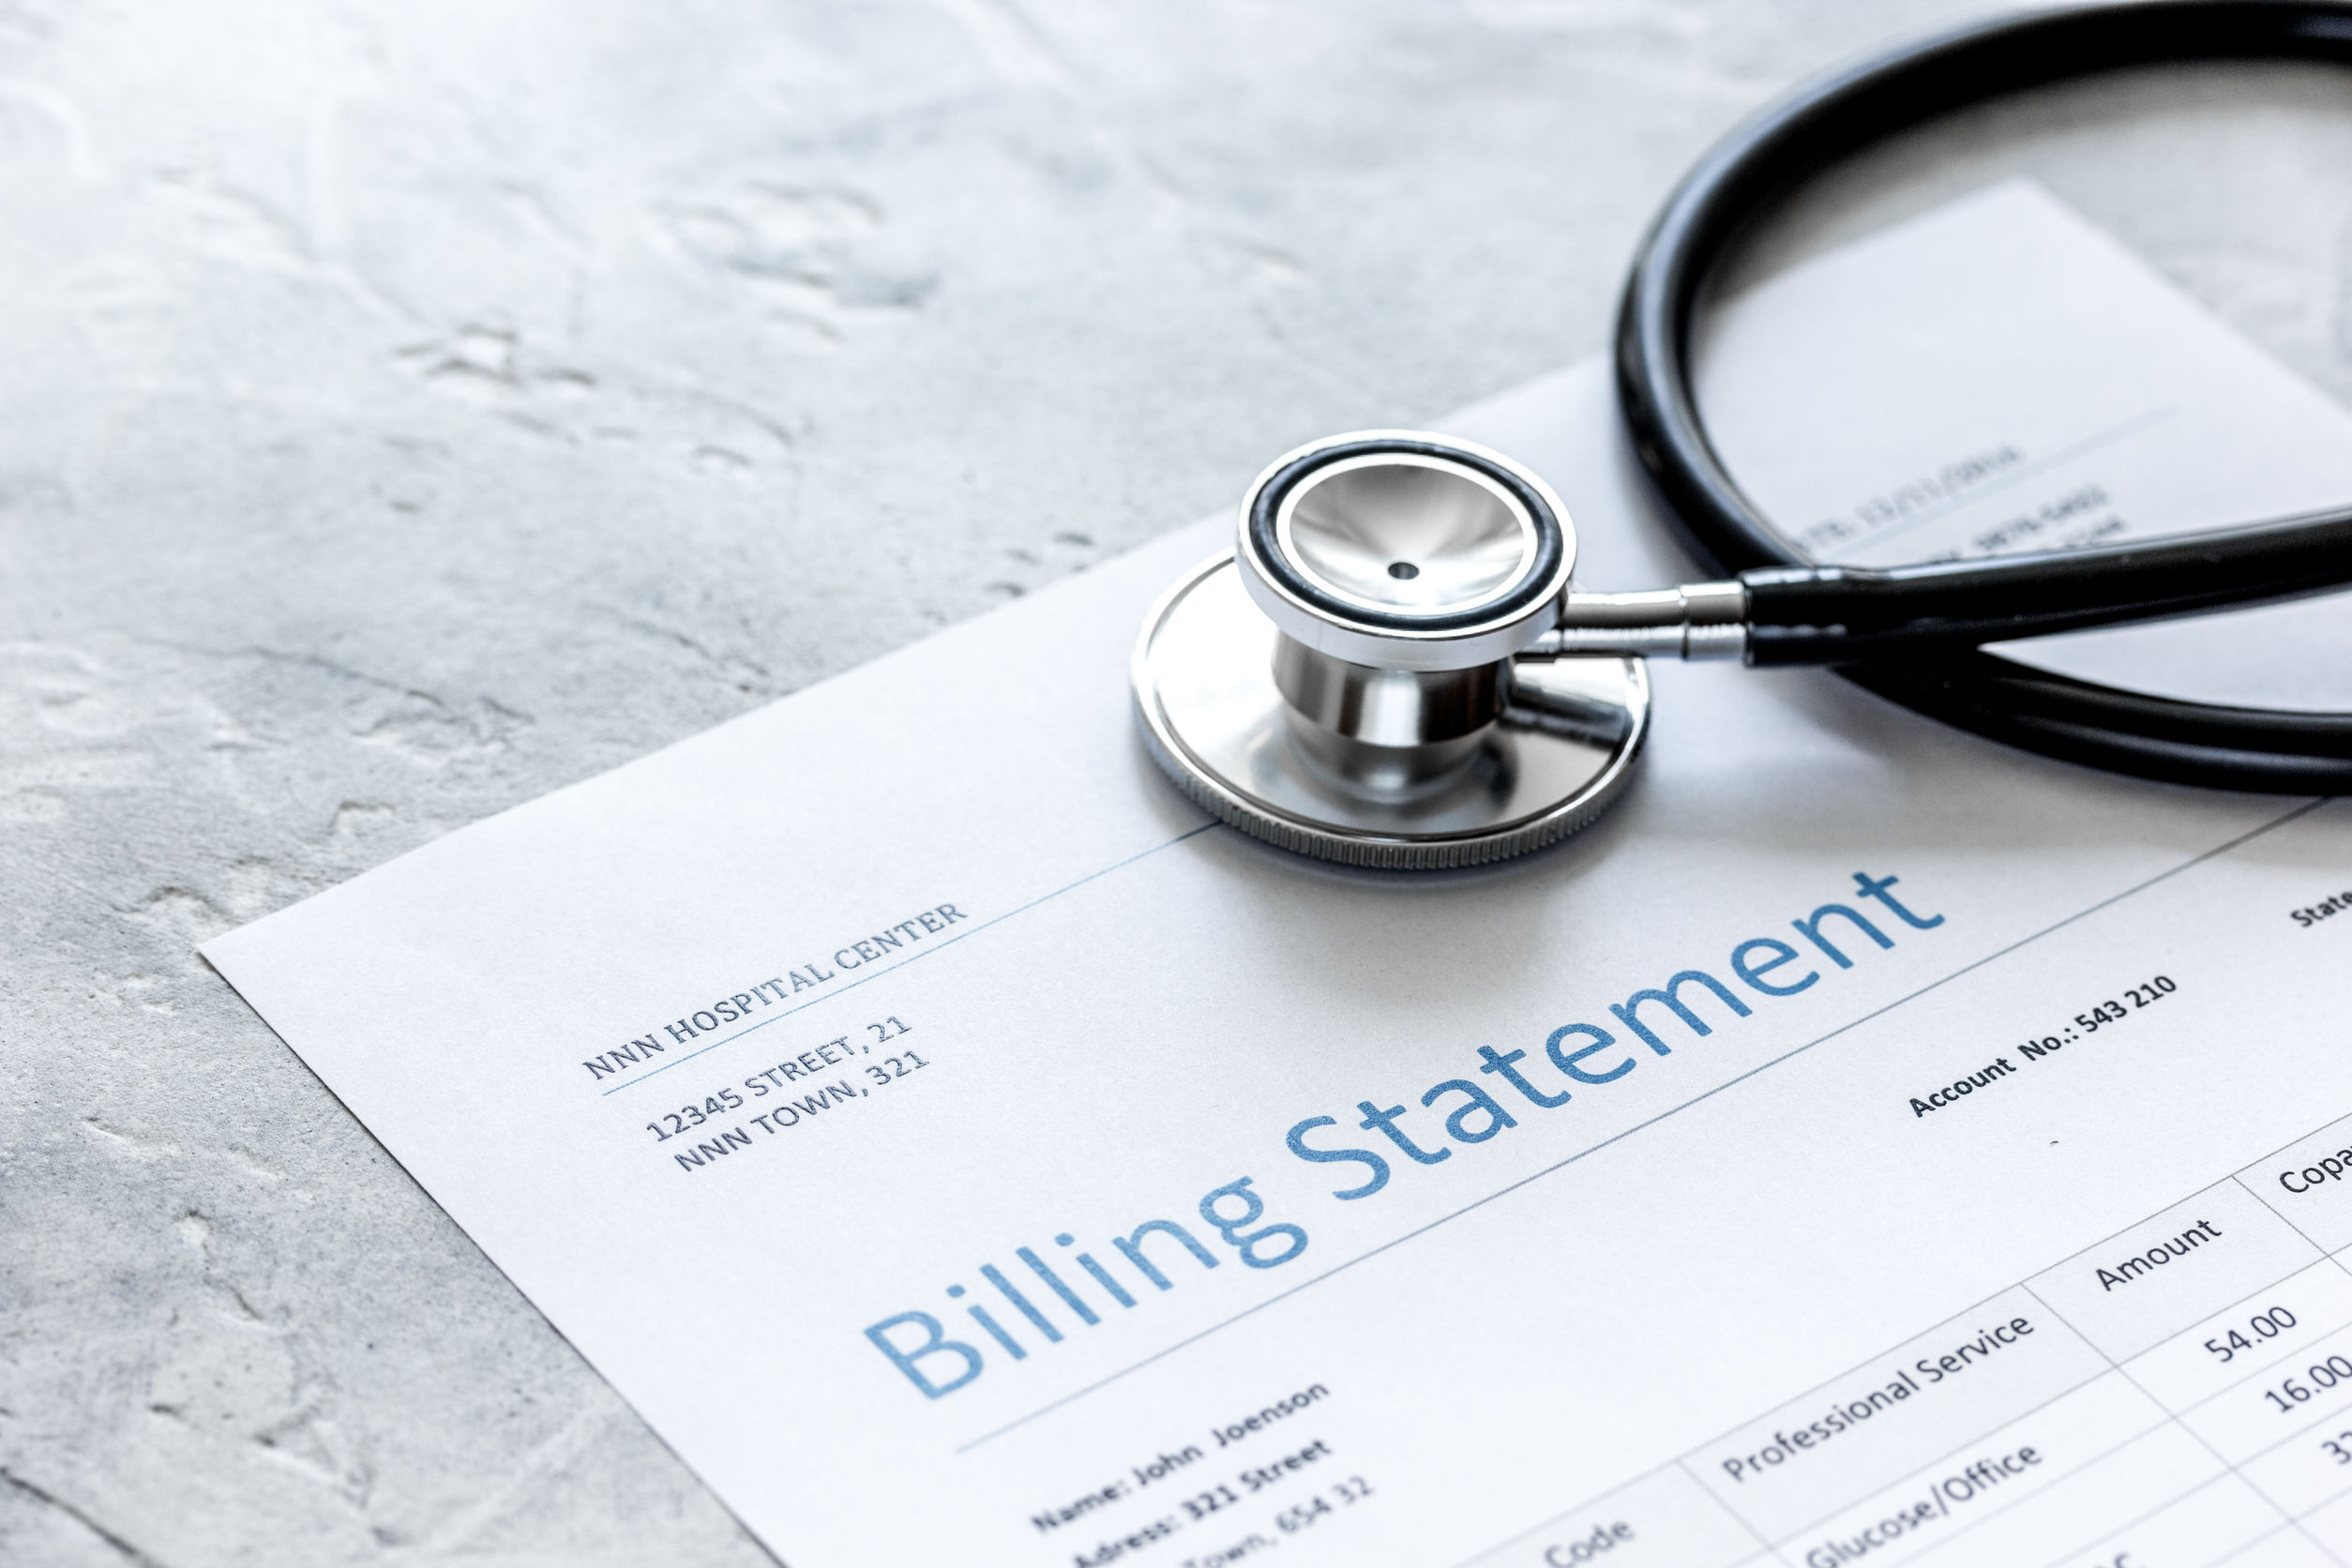 Medical Billing Company, Physician Billing Services